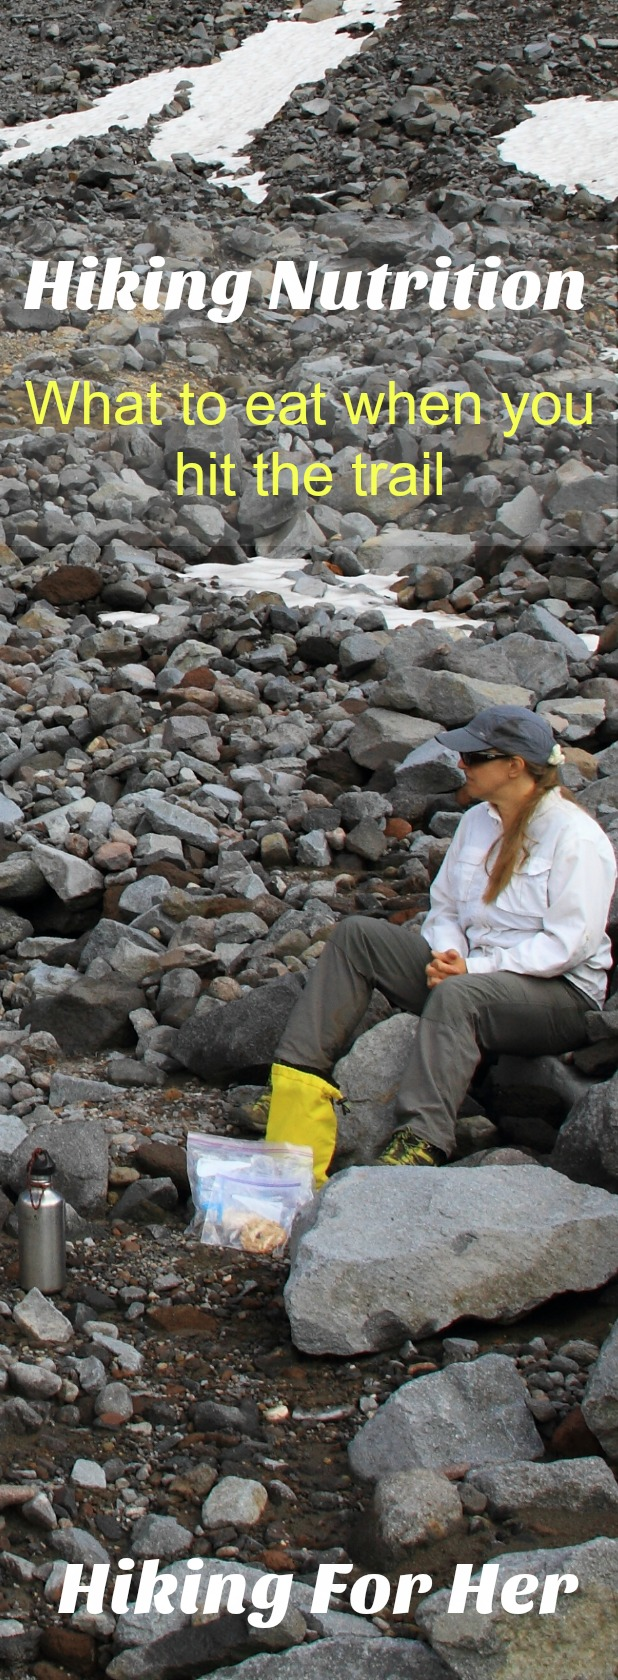 This female hiker wants a tasty but nutrient dense hiking lunch. Maybe she should read these hiking nutrition tips!